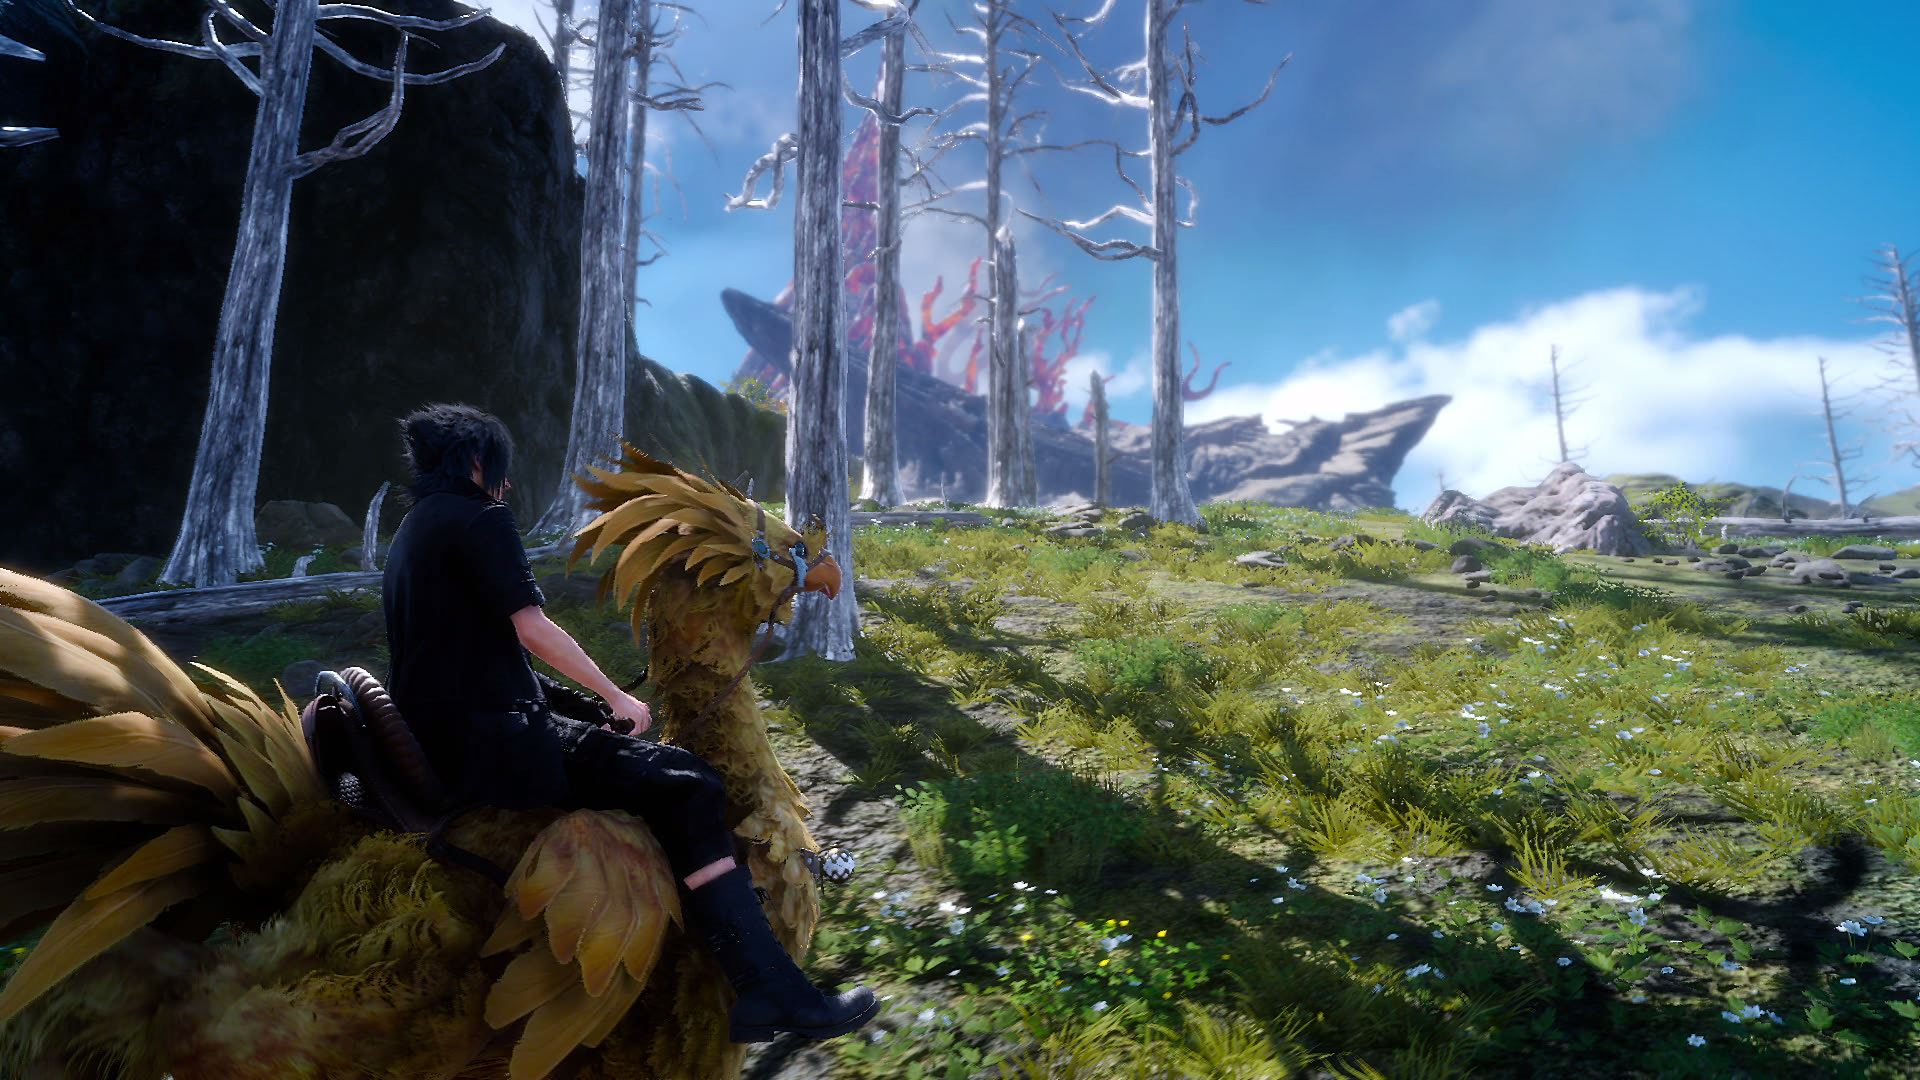 Final Fantasy XV set to Launch Next Month